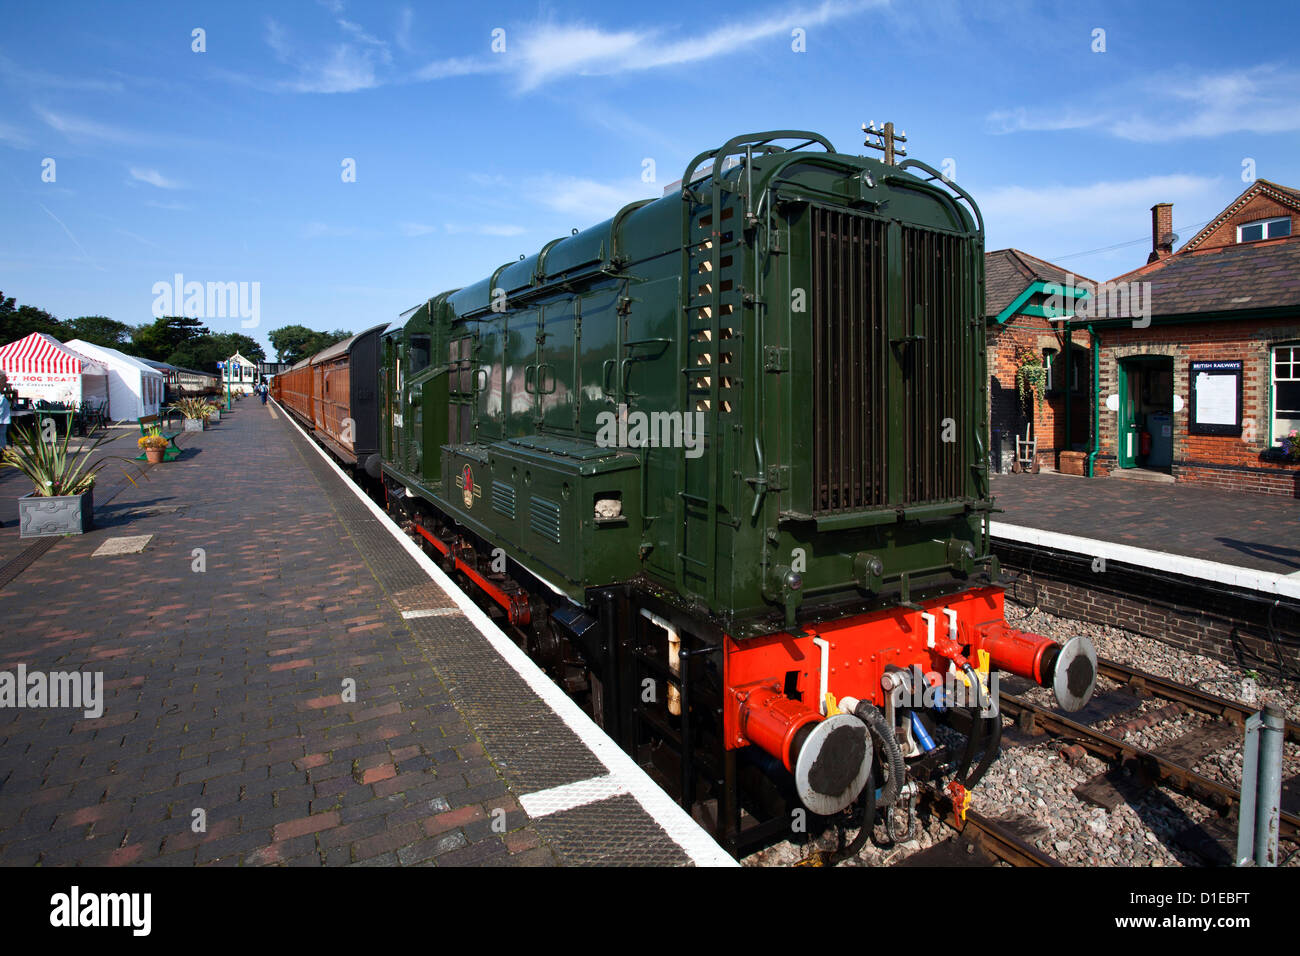 Class 08 Locomotive D3940 on the Poppy Line, North Norfolk Railway, at Sheringham, Norfolk, England, United Kingdom, - Stock Image